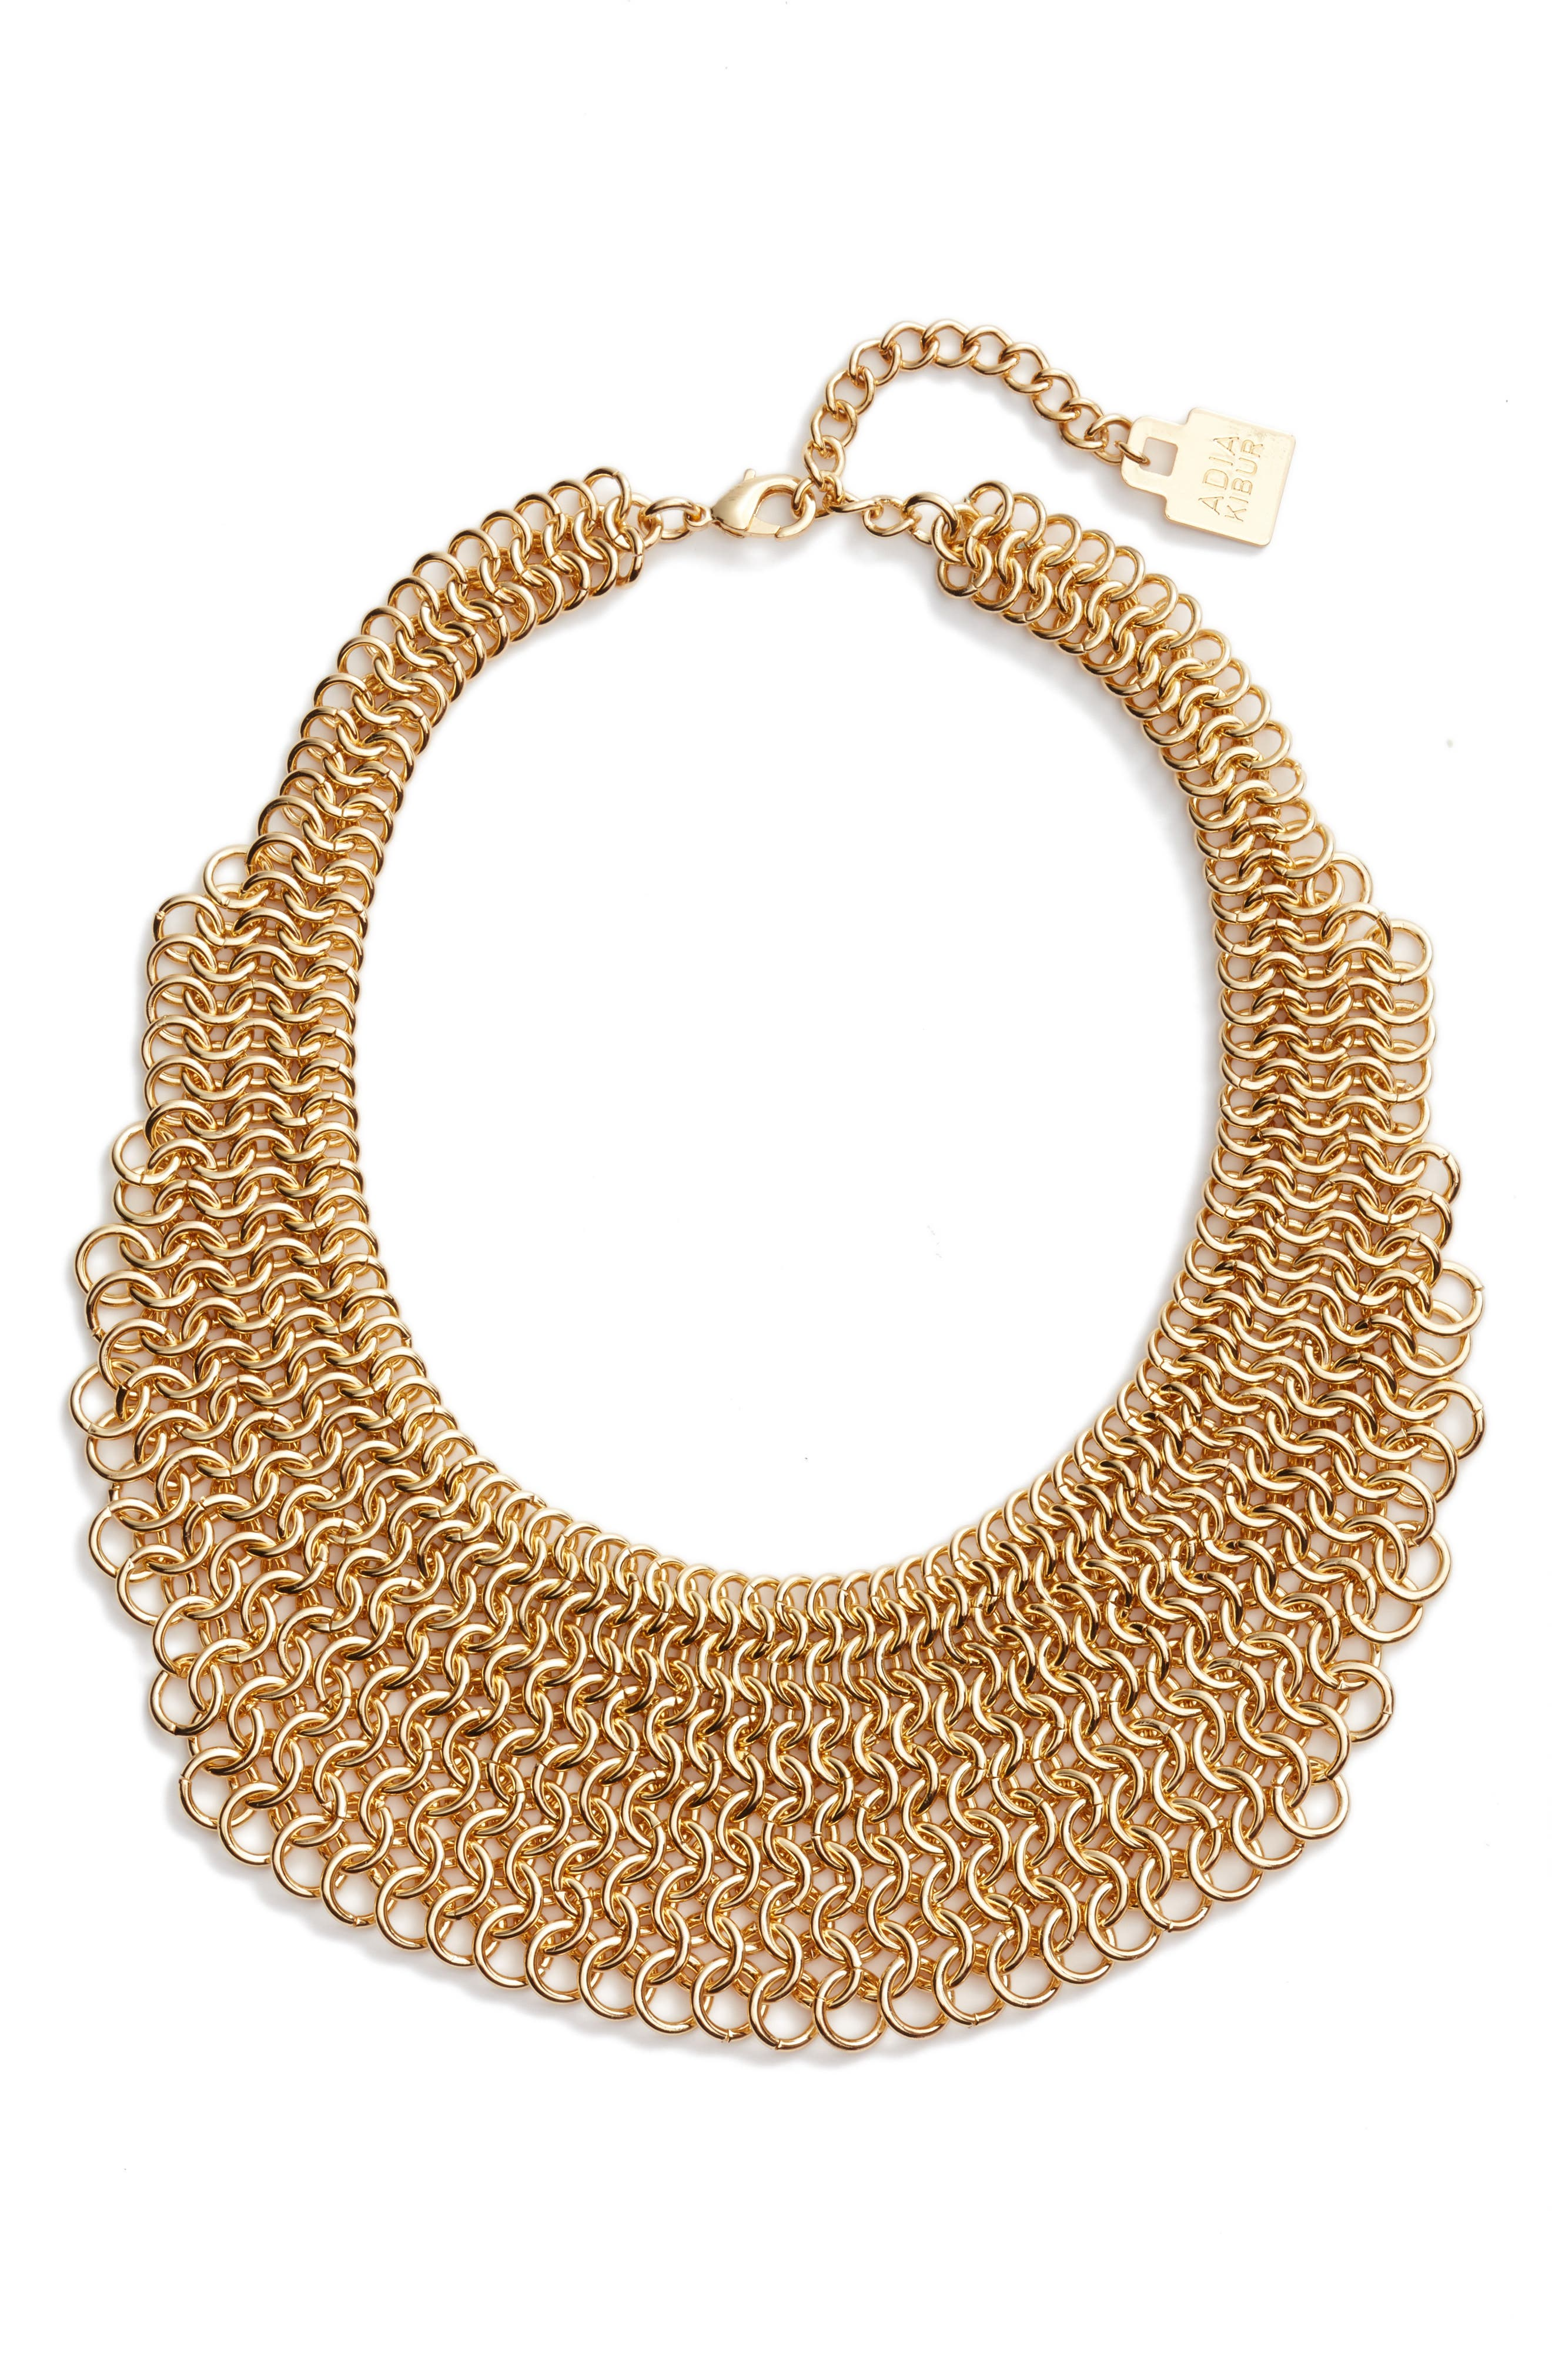 Linked Circle Statement Bib Necklace,                             Main thumbnail 1, color,                             Gold